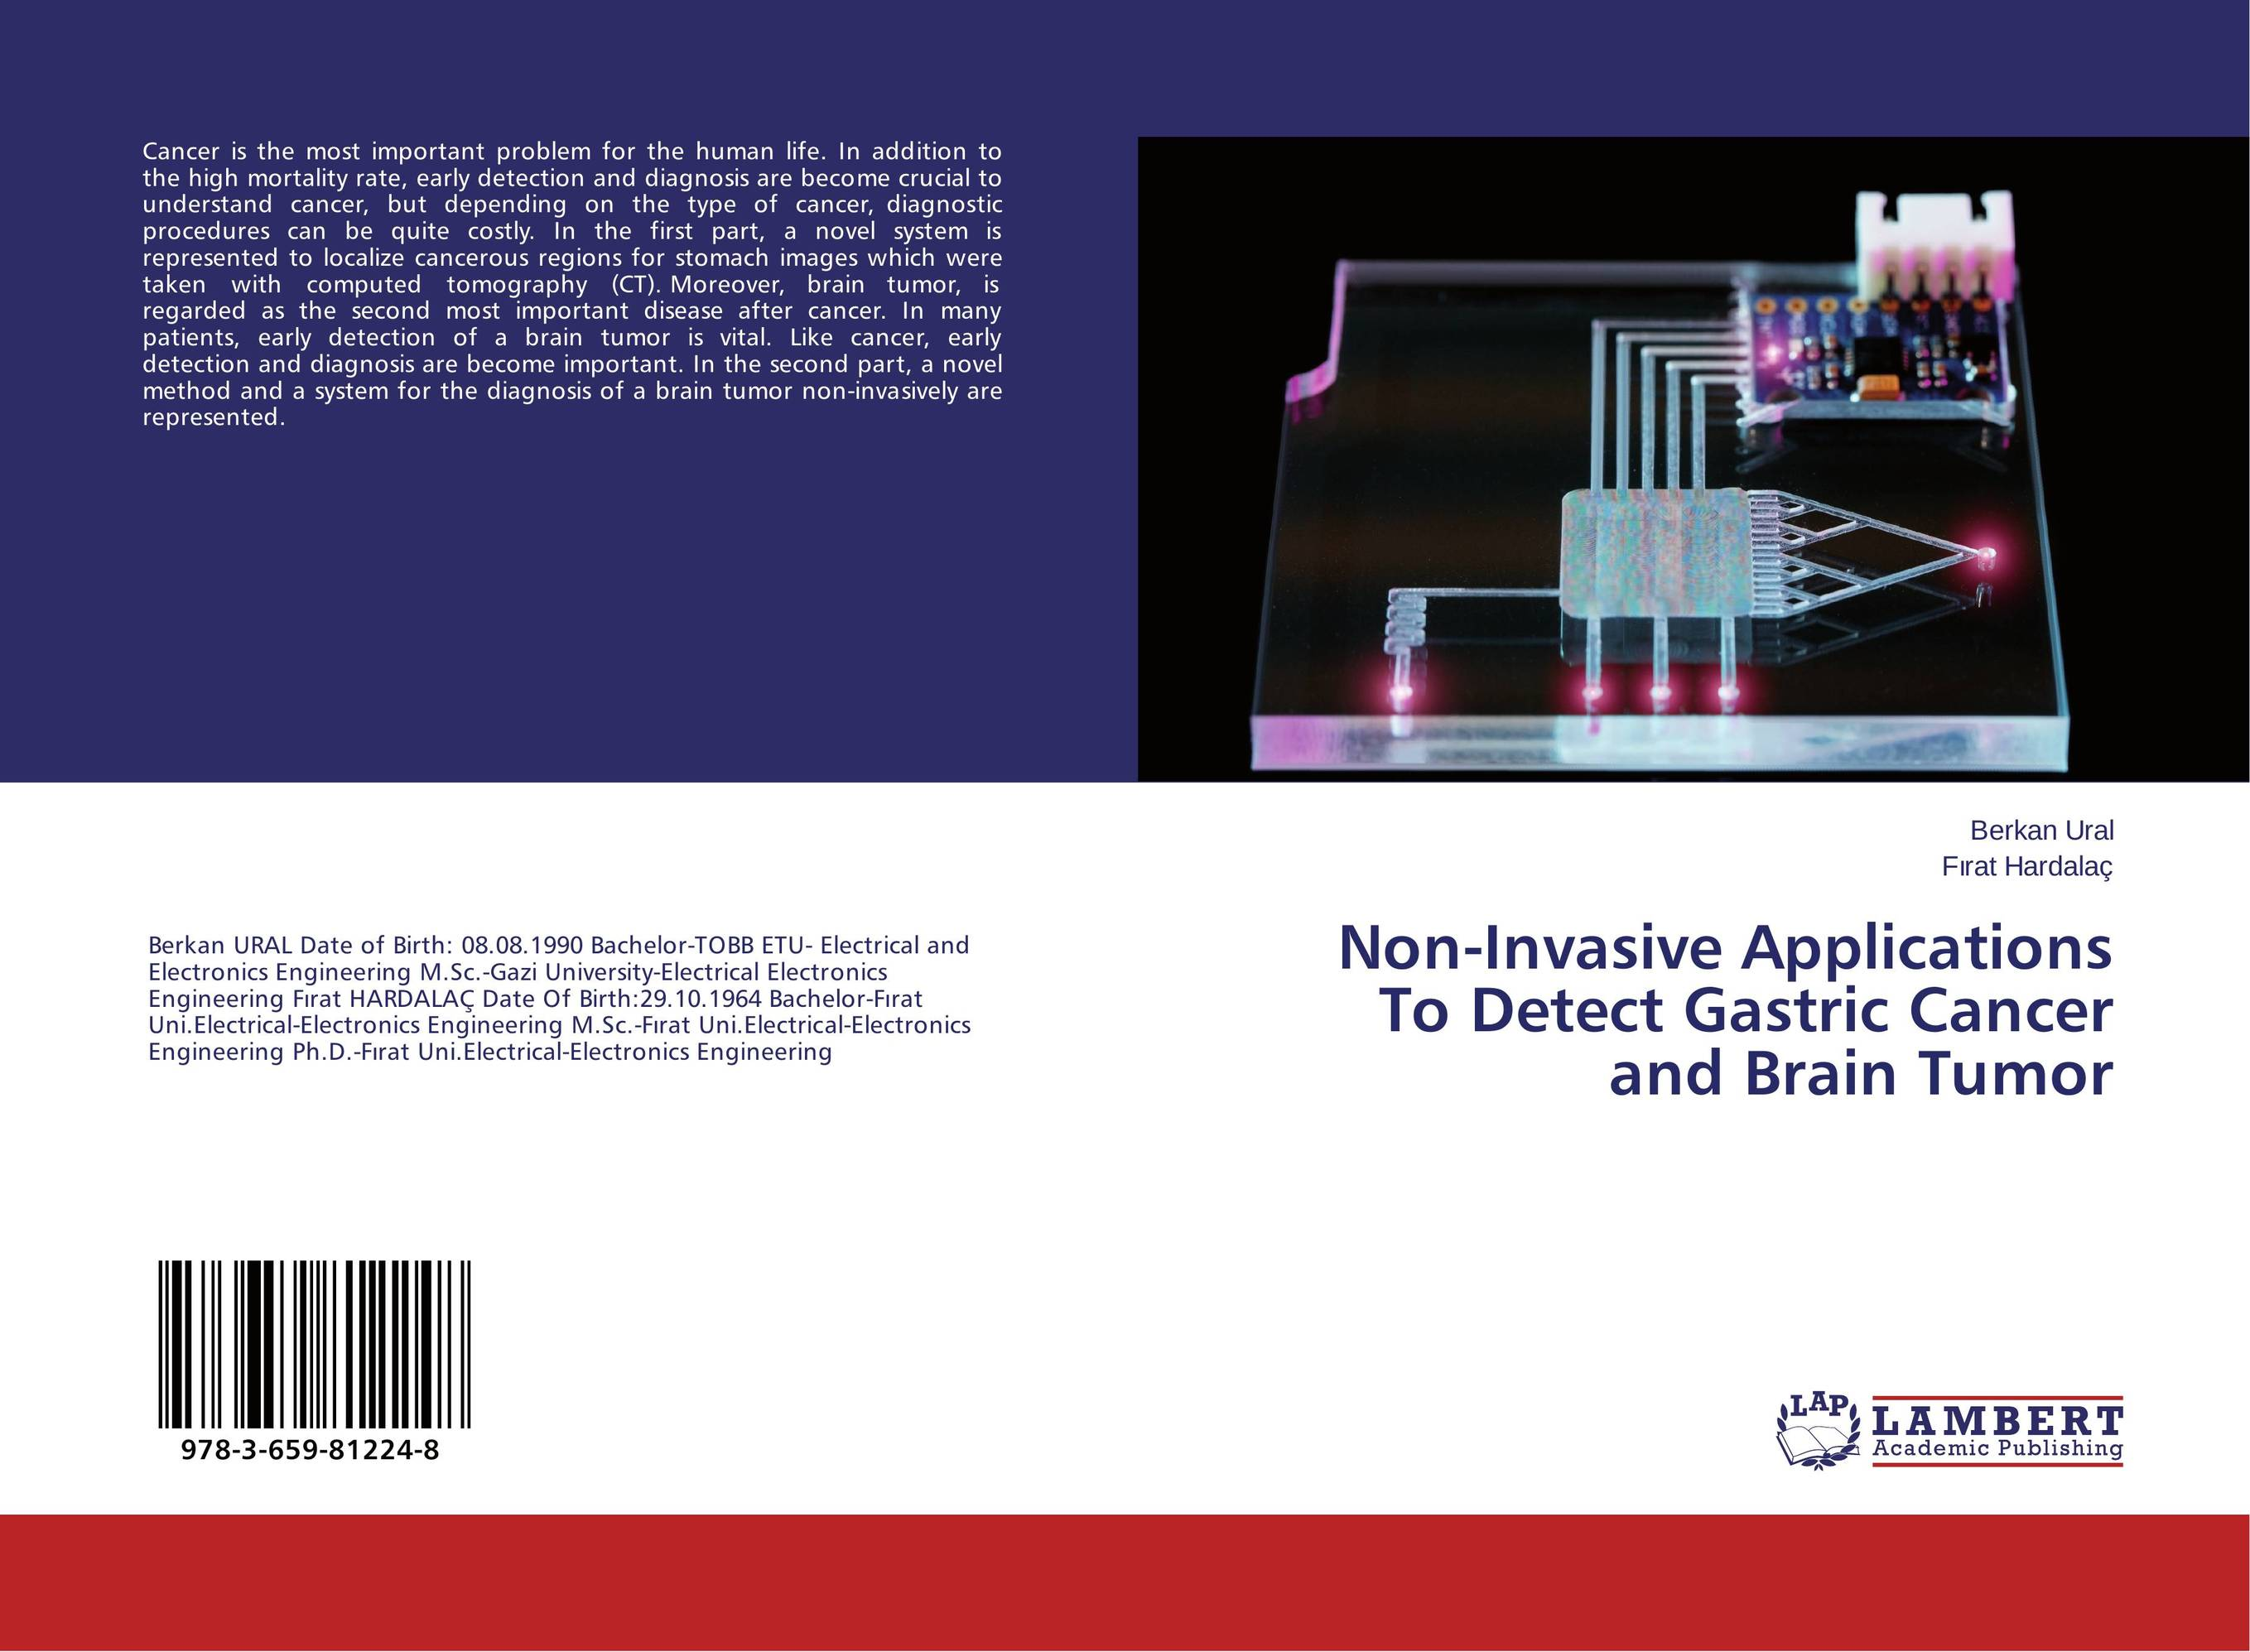 Non-Invasive Applications To Detect Gastric Cancer and Brain Tumor viruses cell transformation and cancer 5